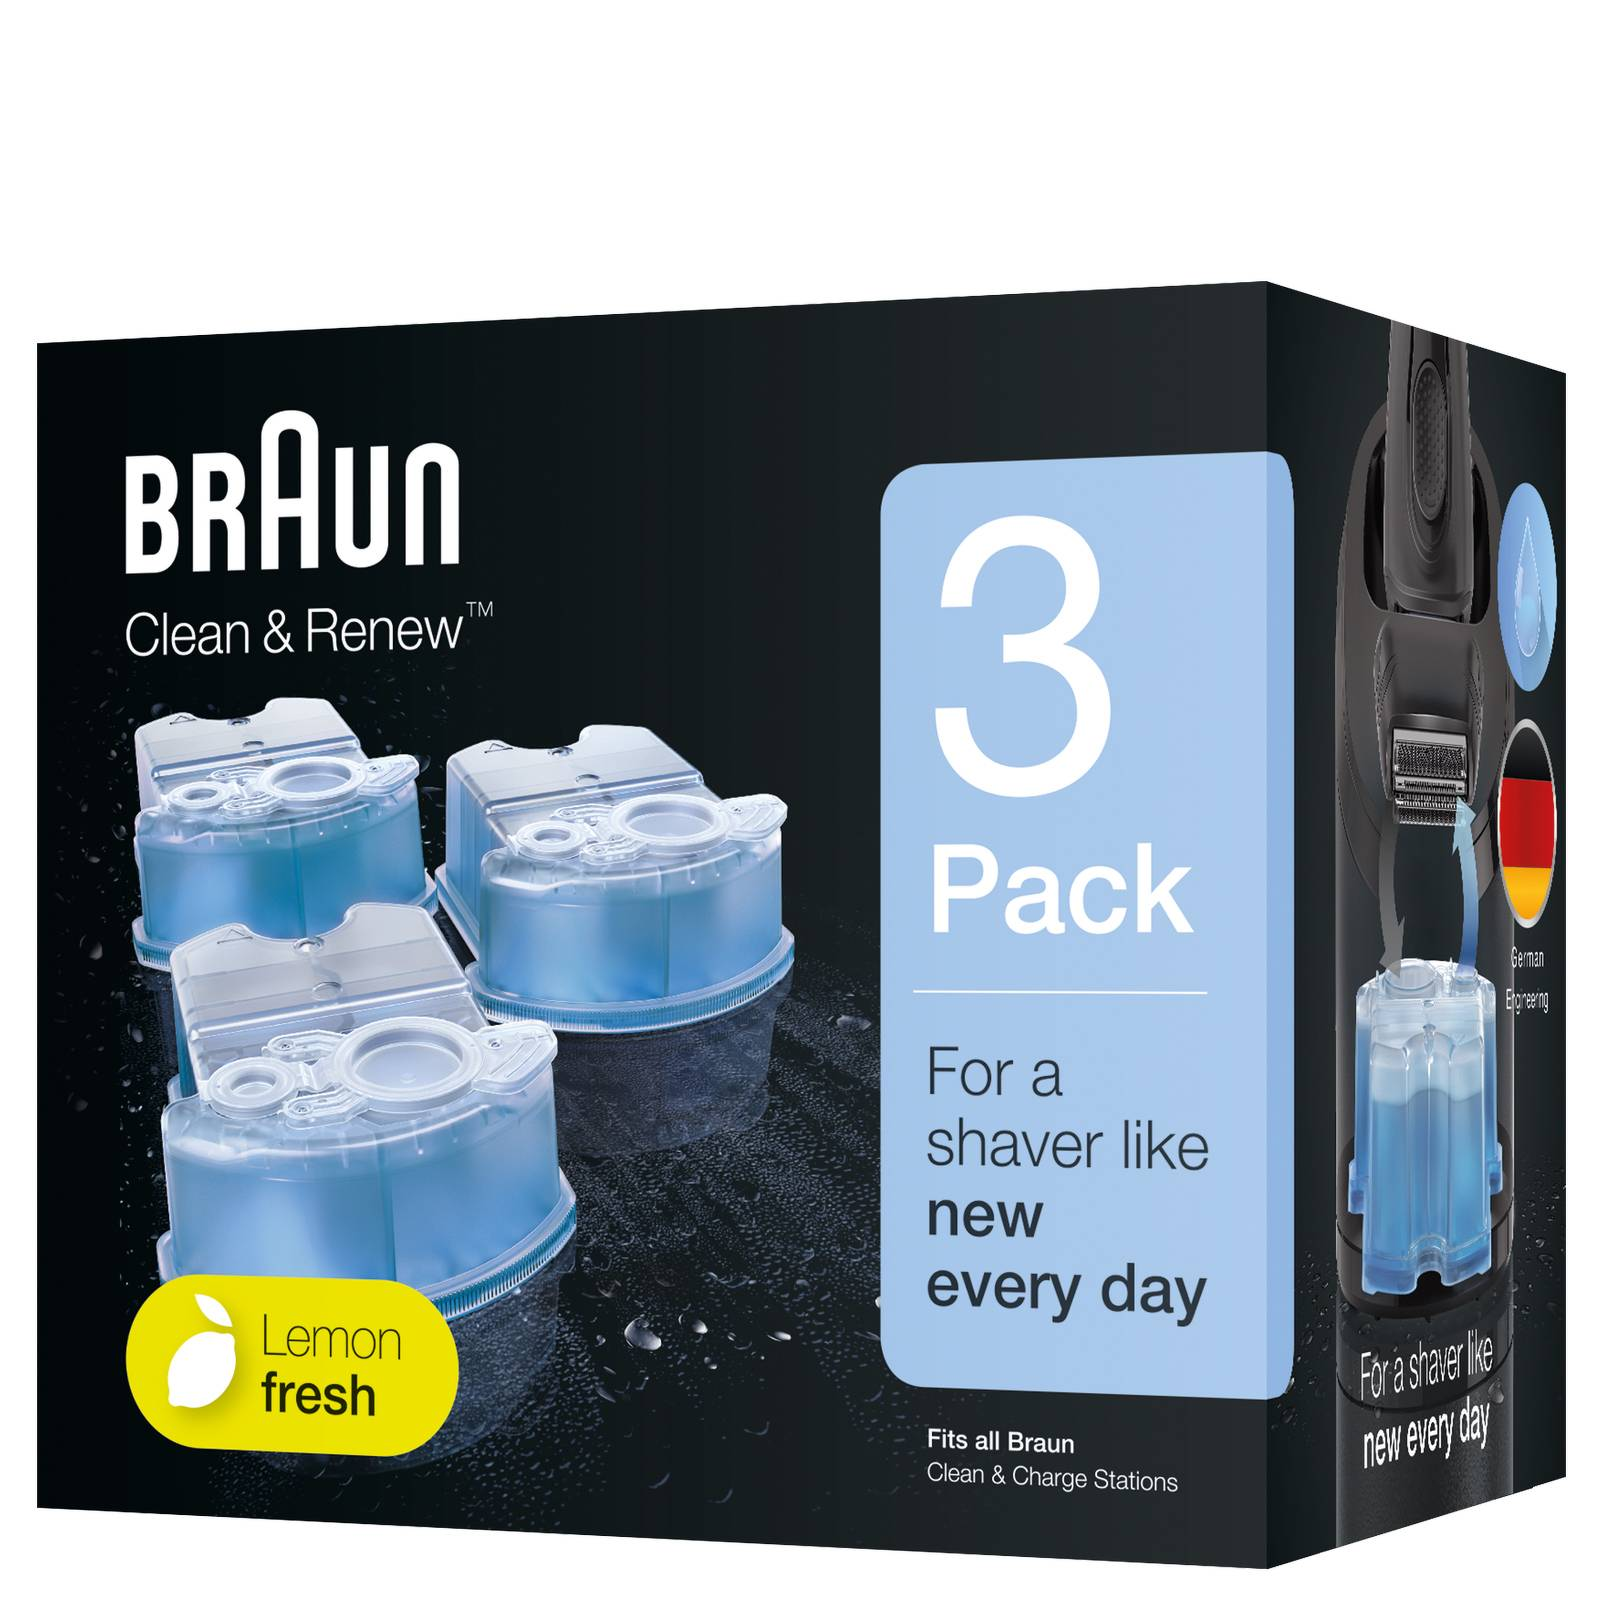 Braun - Accessories Clean & Charge Refill 3 Pack for Men